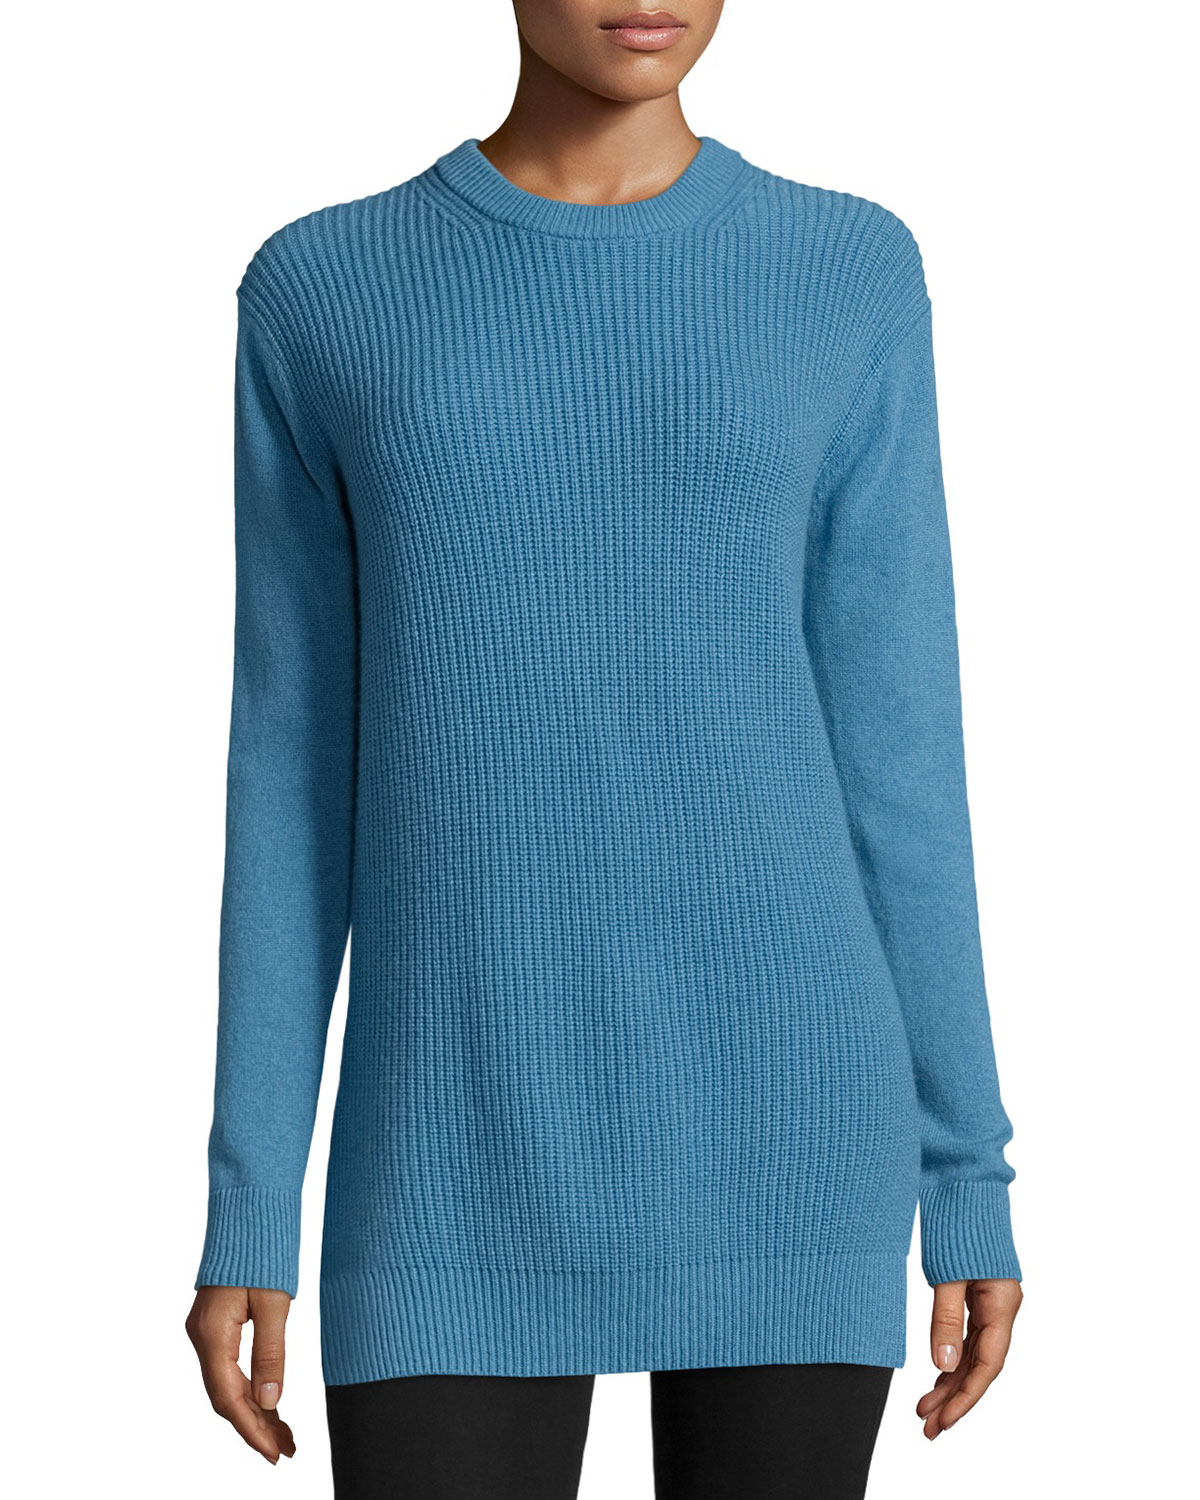 28ecd4b3e87 MICHAEL Michael Kors Long-sleeve Shaker-knit Cashmere Sweater in ...